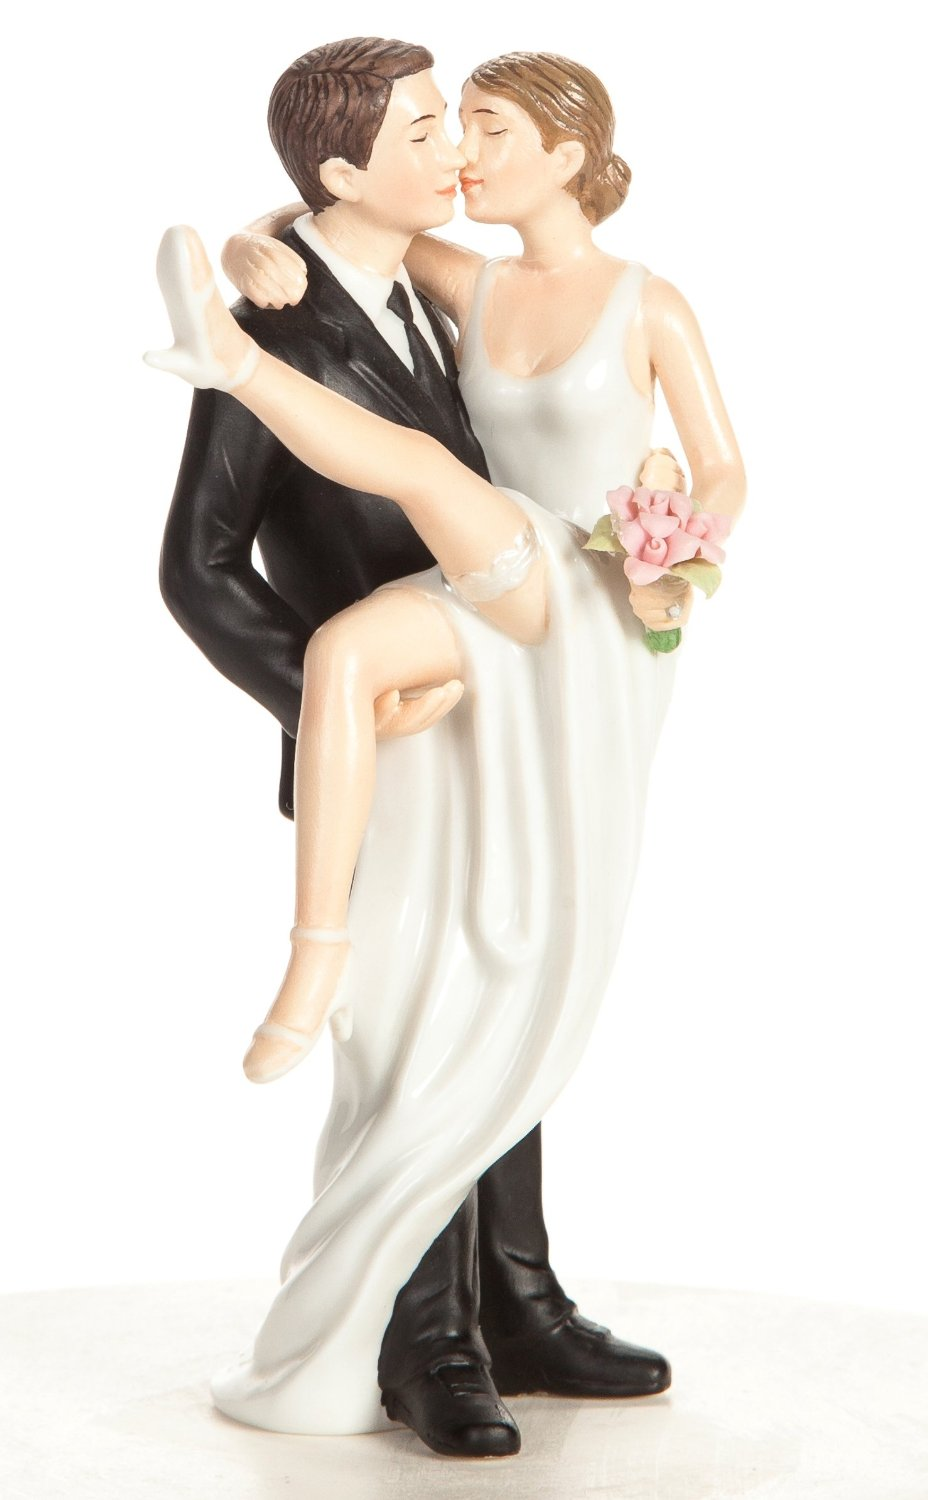 Wedding Collectibles Over the Threshold Wedding Bride and Groom Cake Topper Figurine